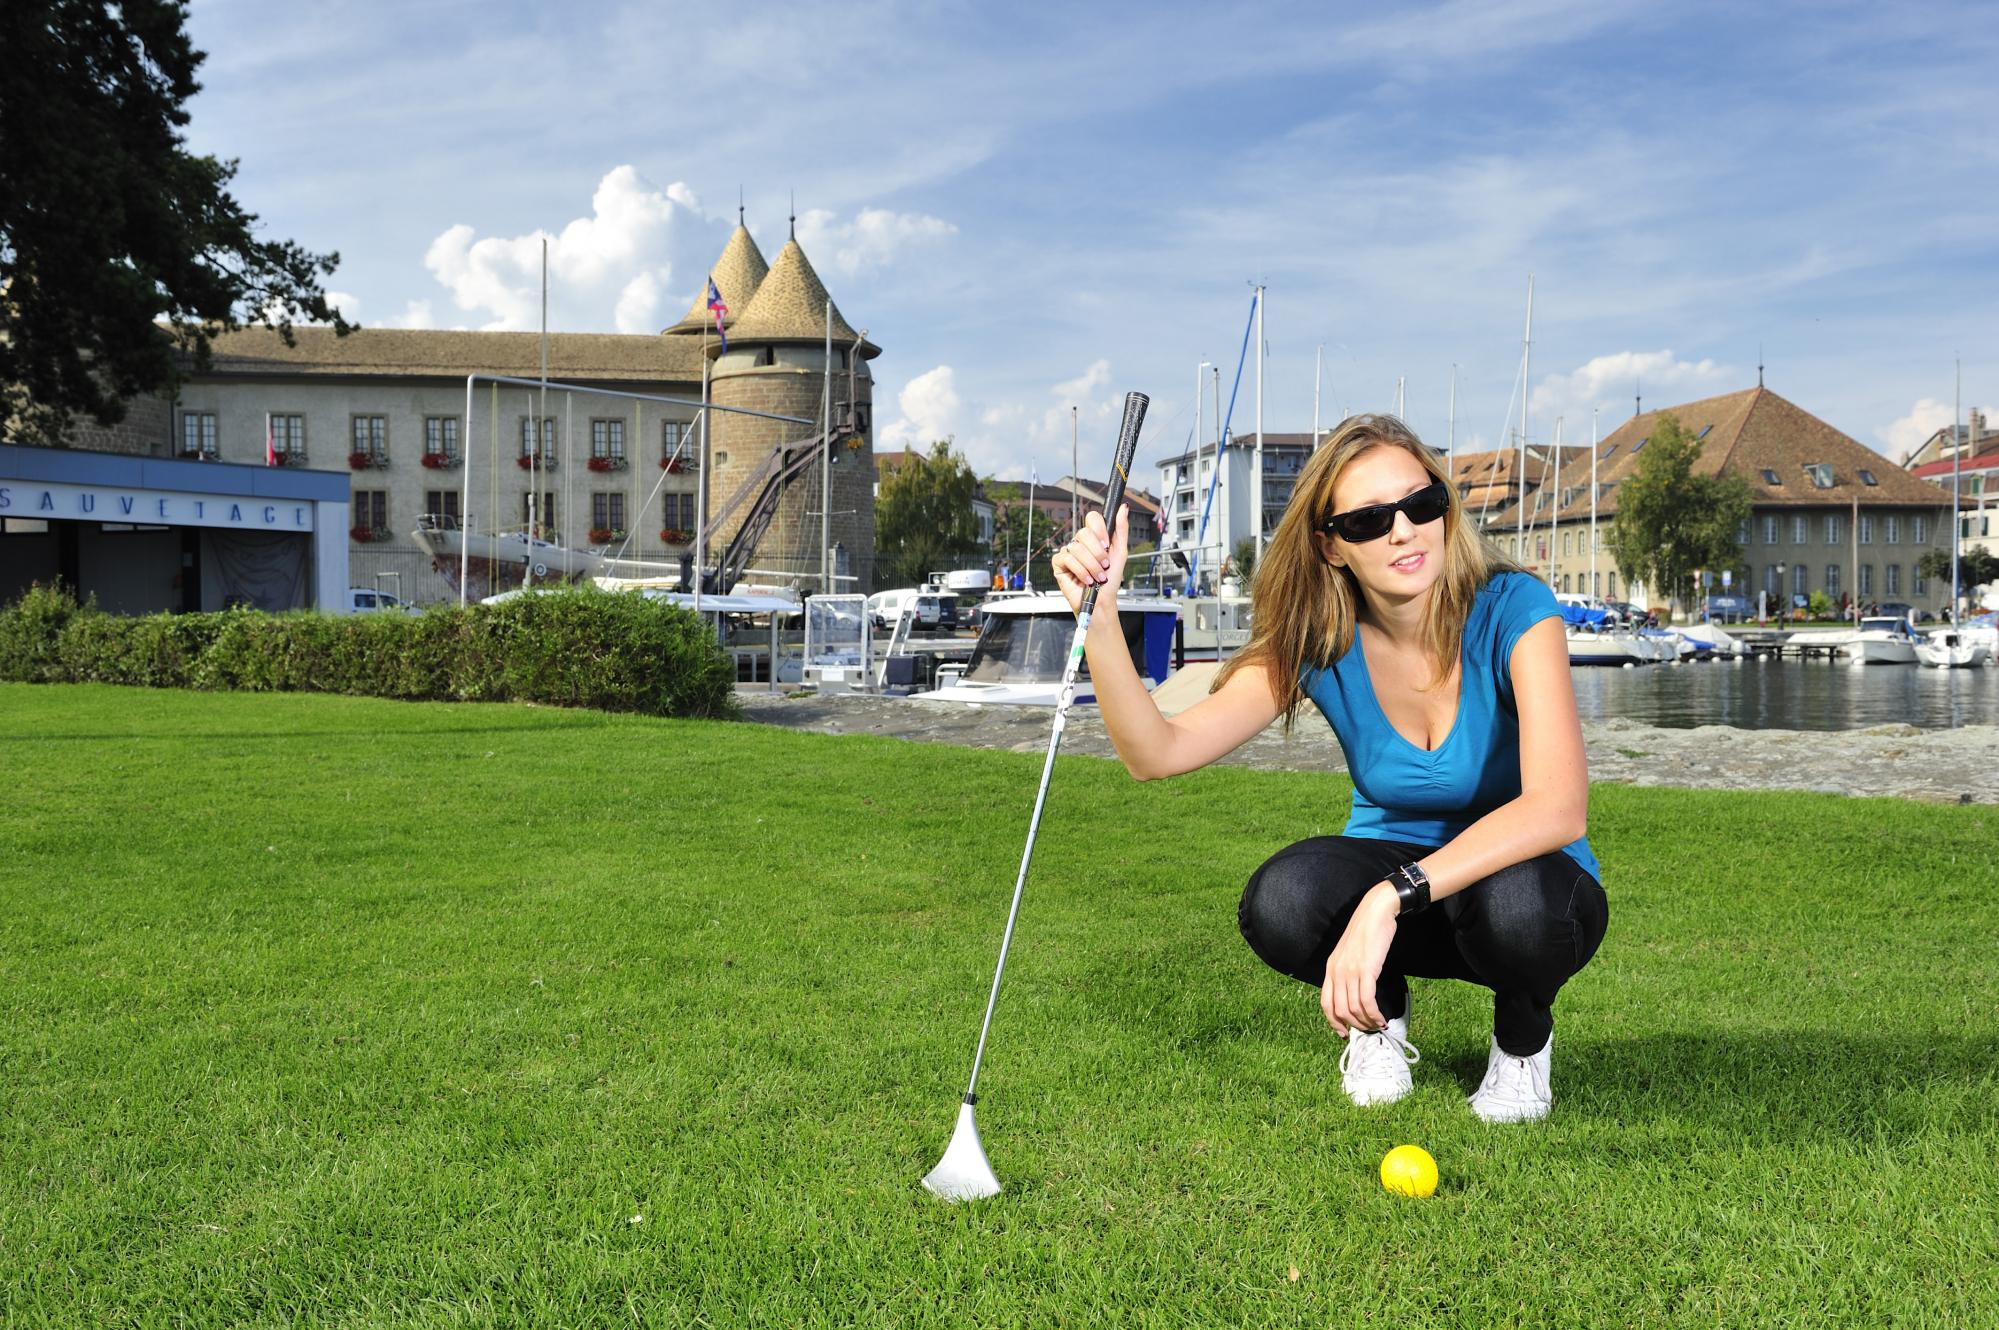 ityGolf Morges-Préverenges